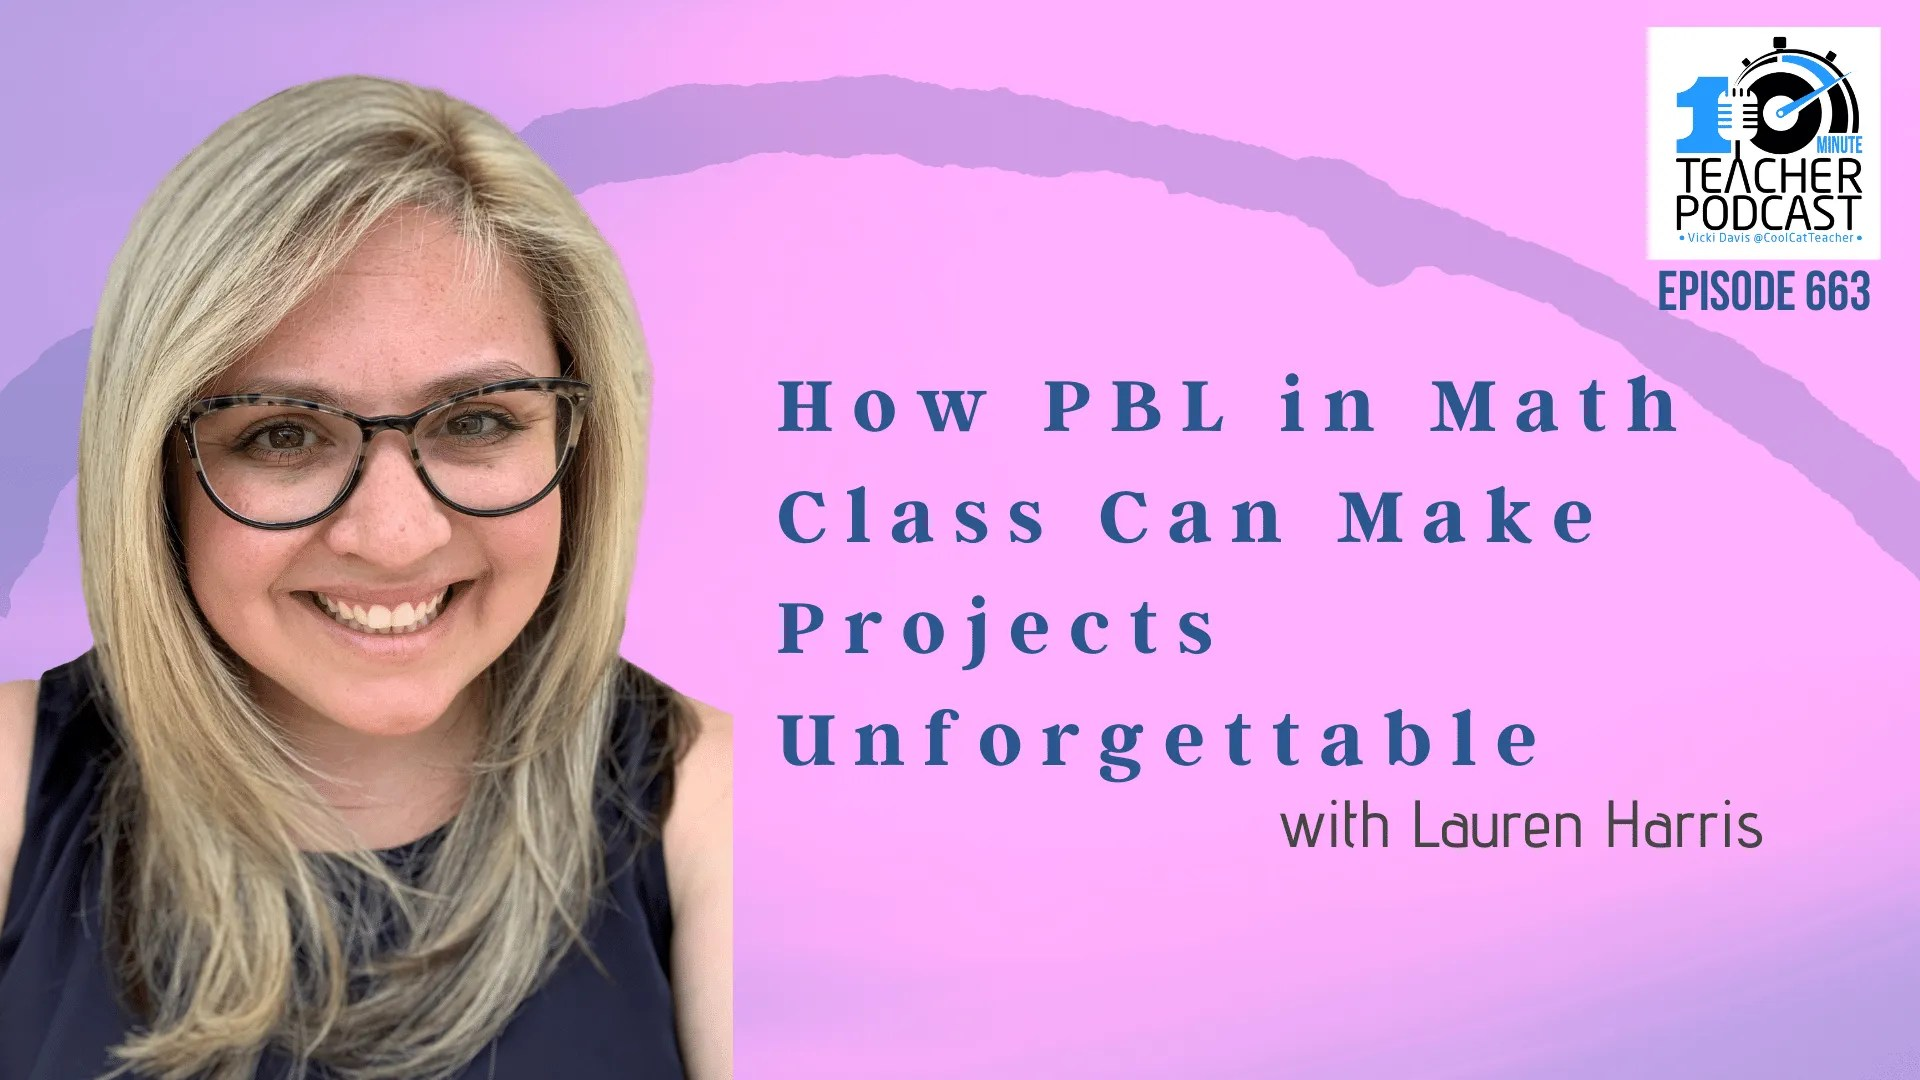 How PBL in Math Class Can Make Projects Unforgettable